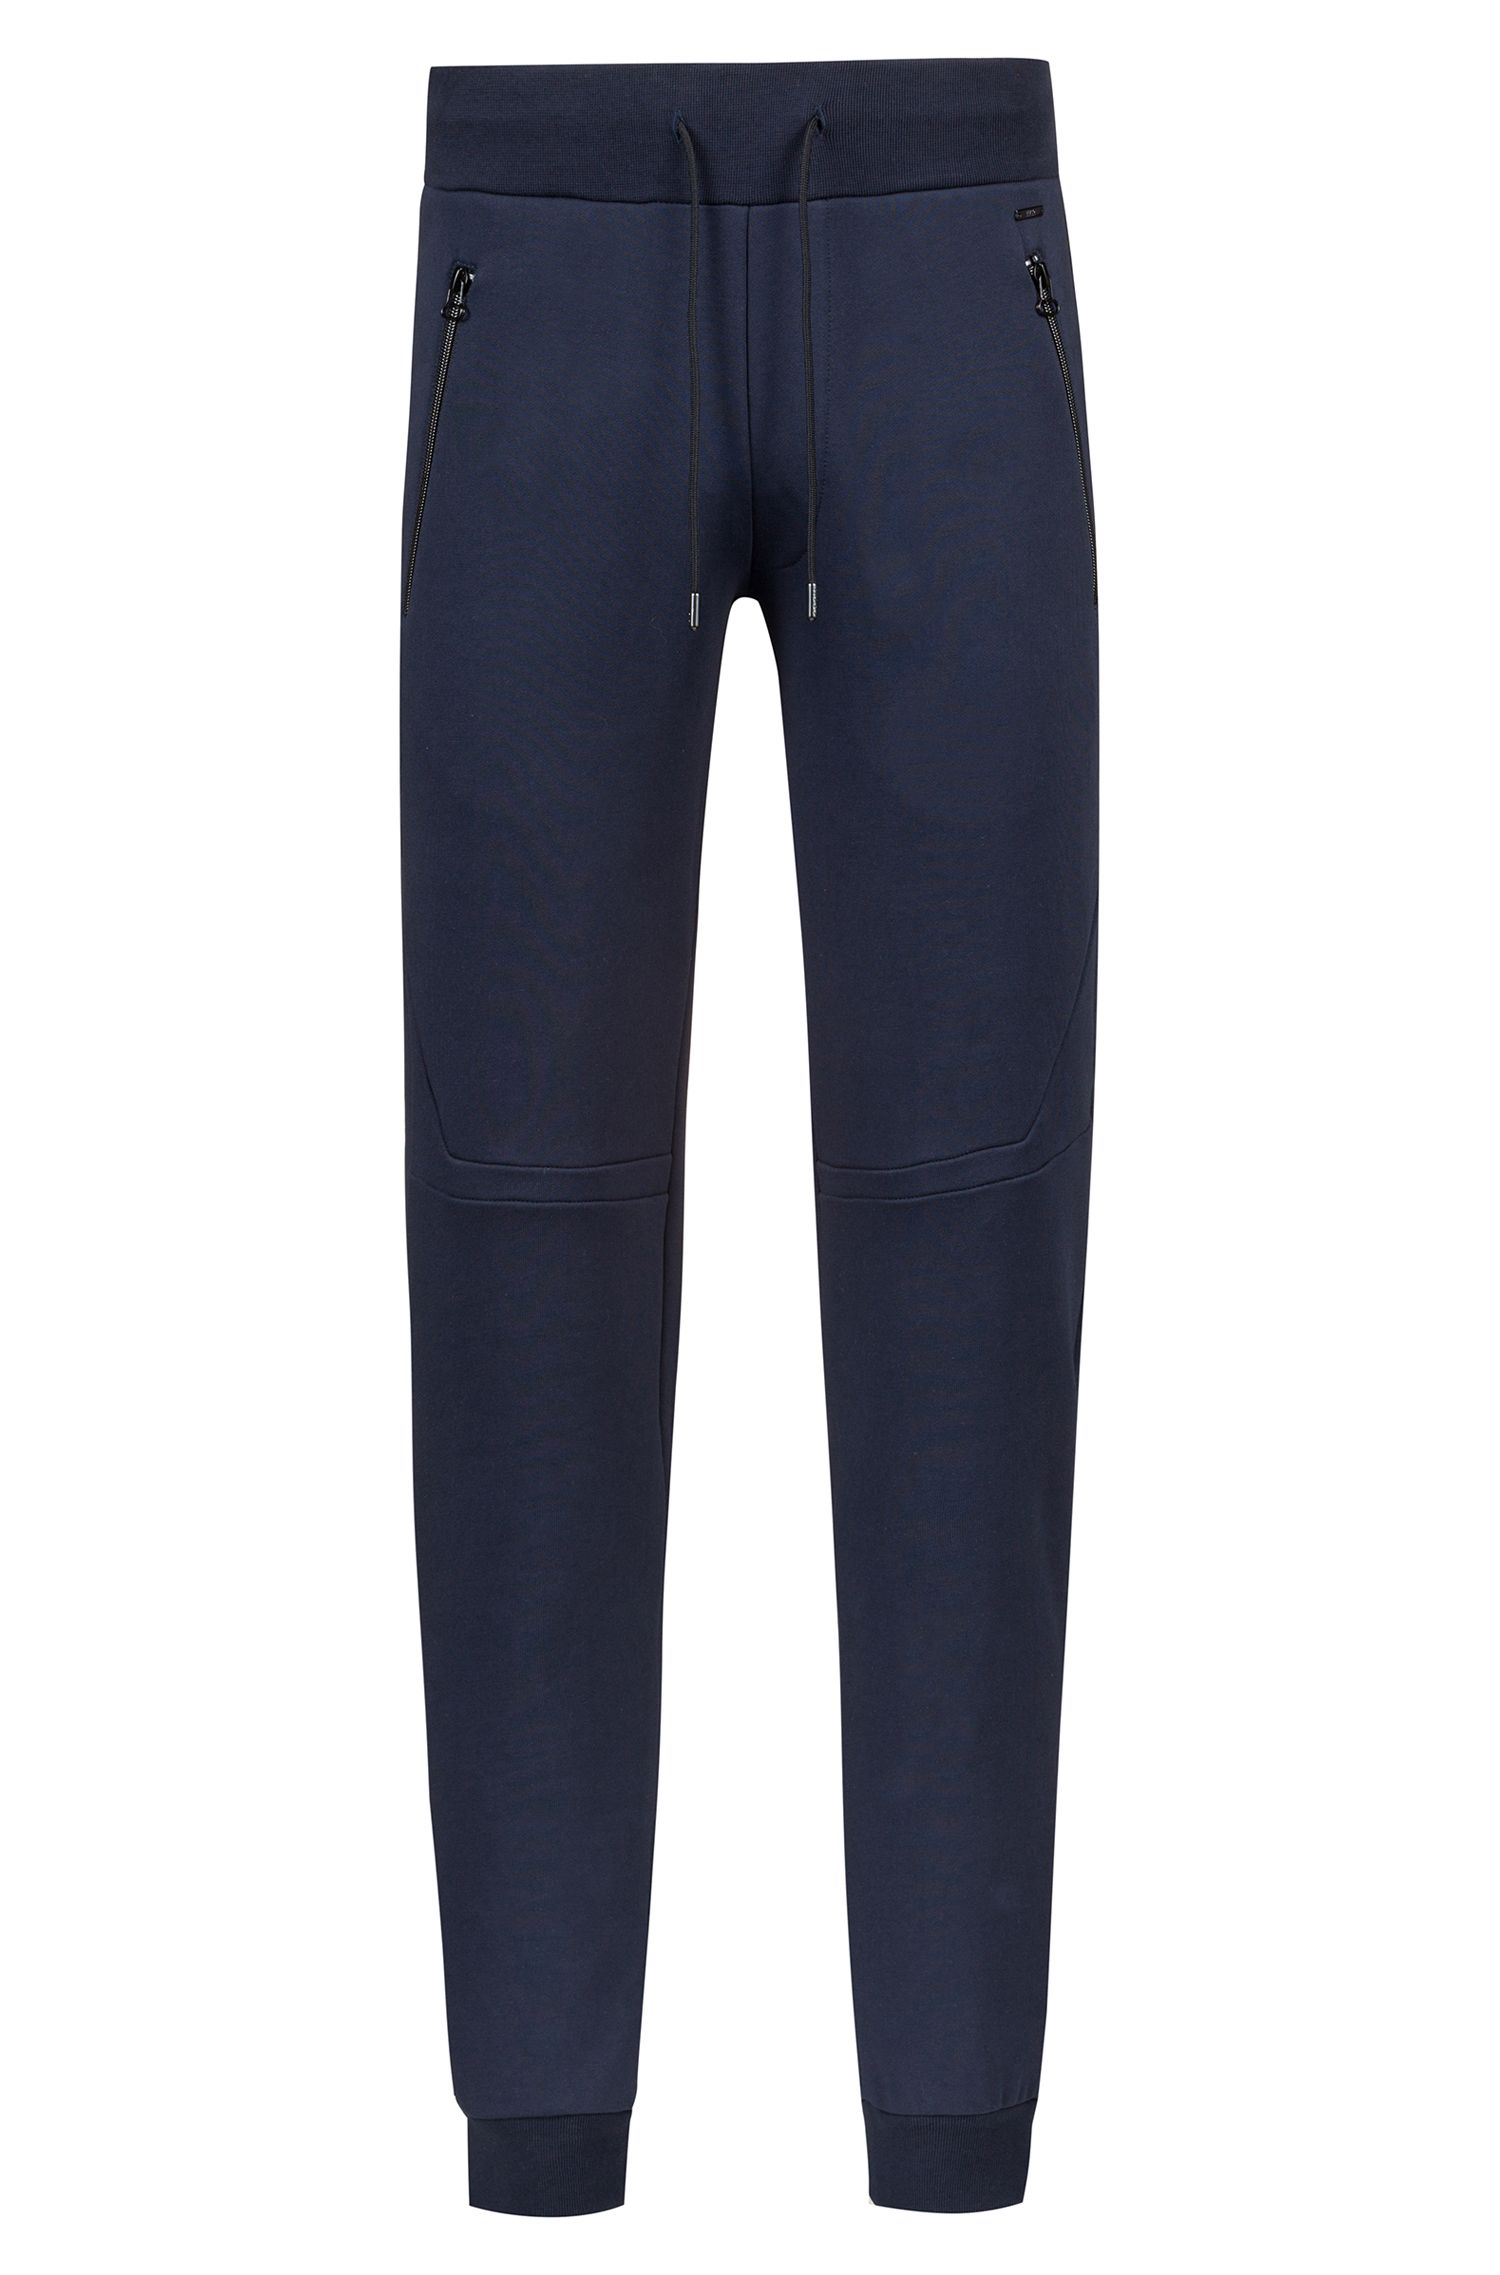 Pantalon Regular Fit resserré au bas des jambes de la collection capsule Bits & Bytes, en molleton French Terry, Bleu foncé